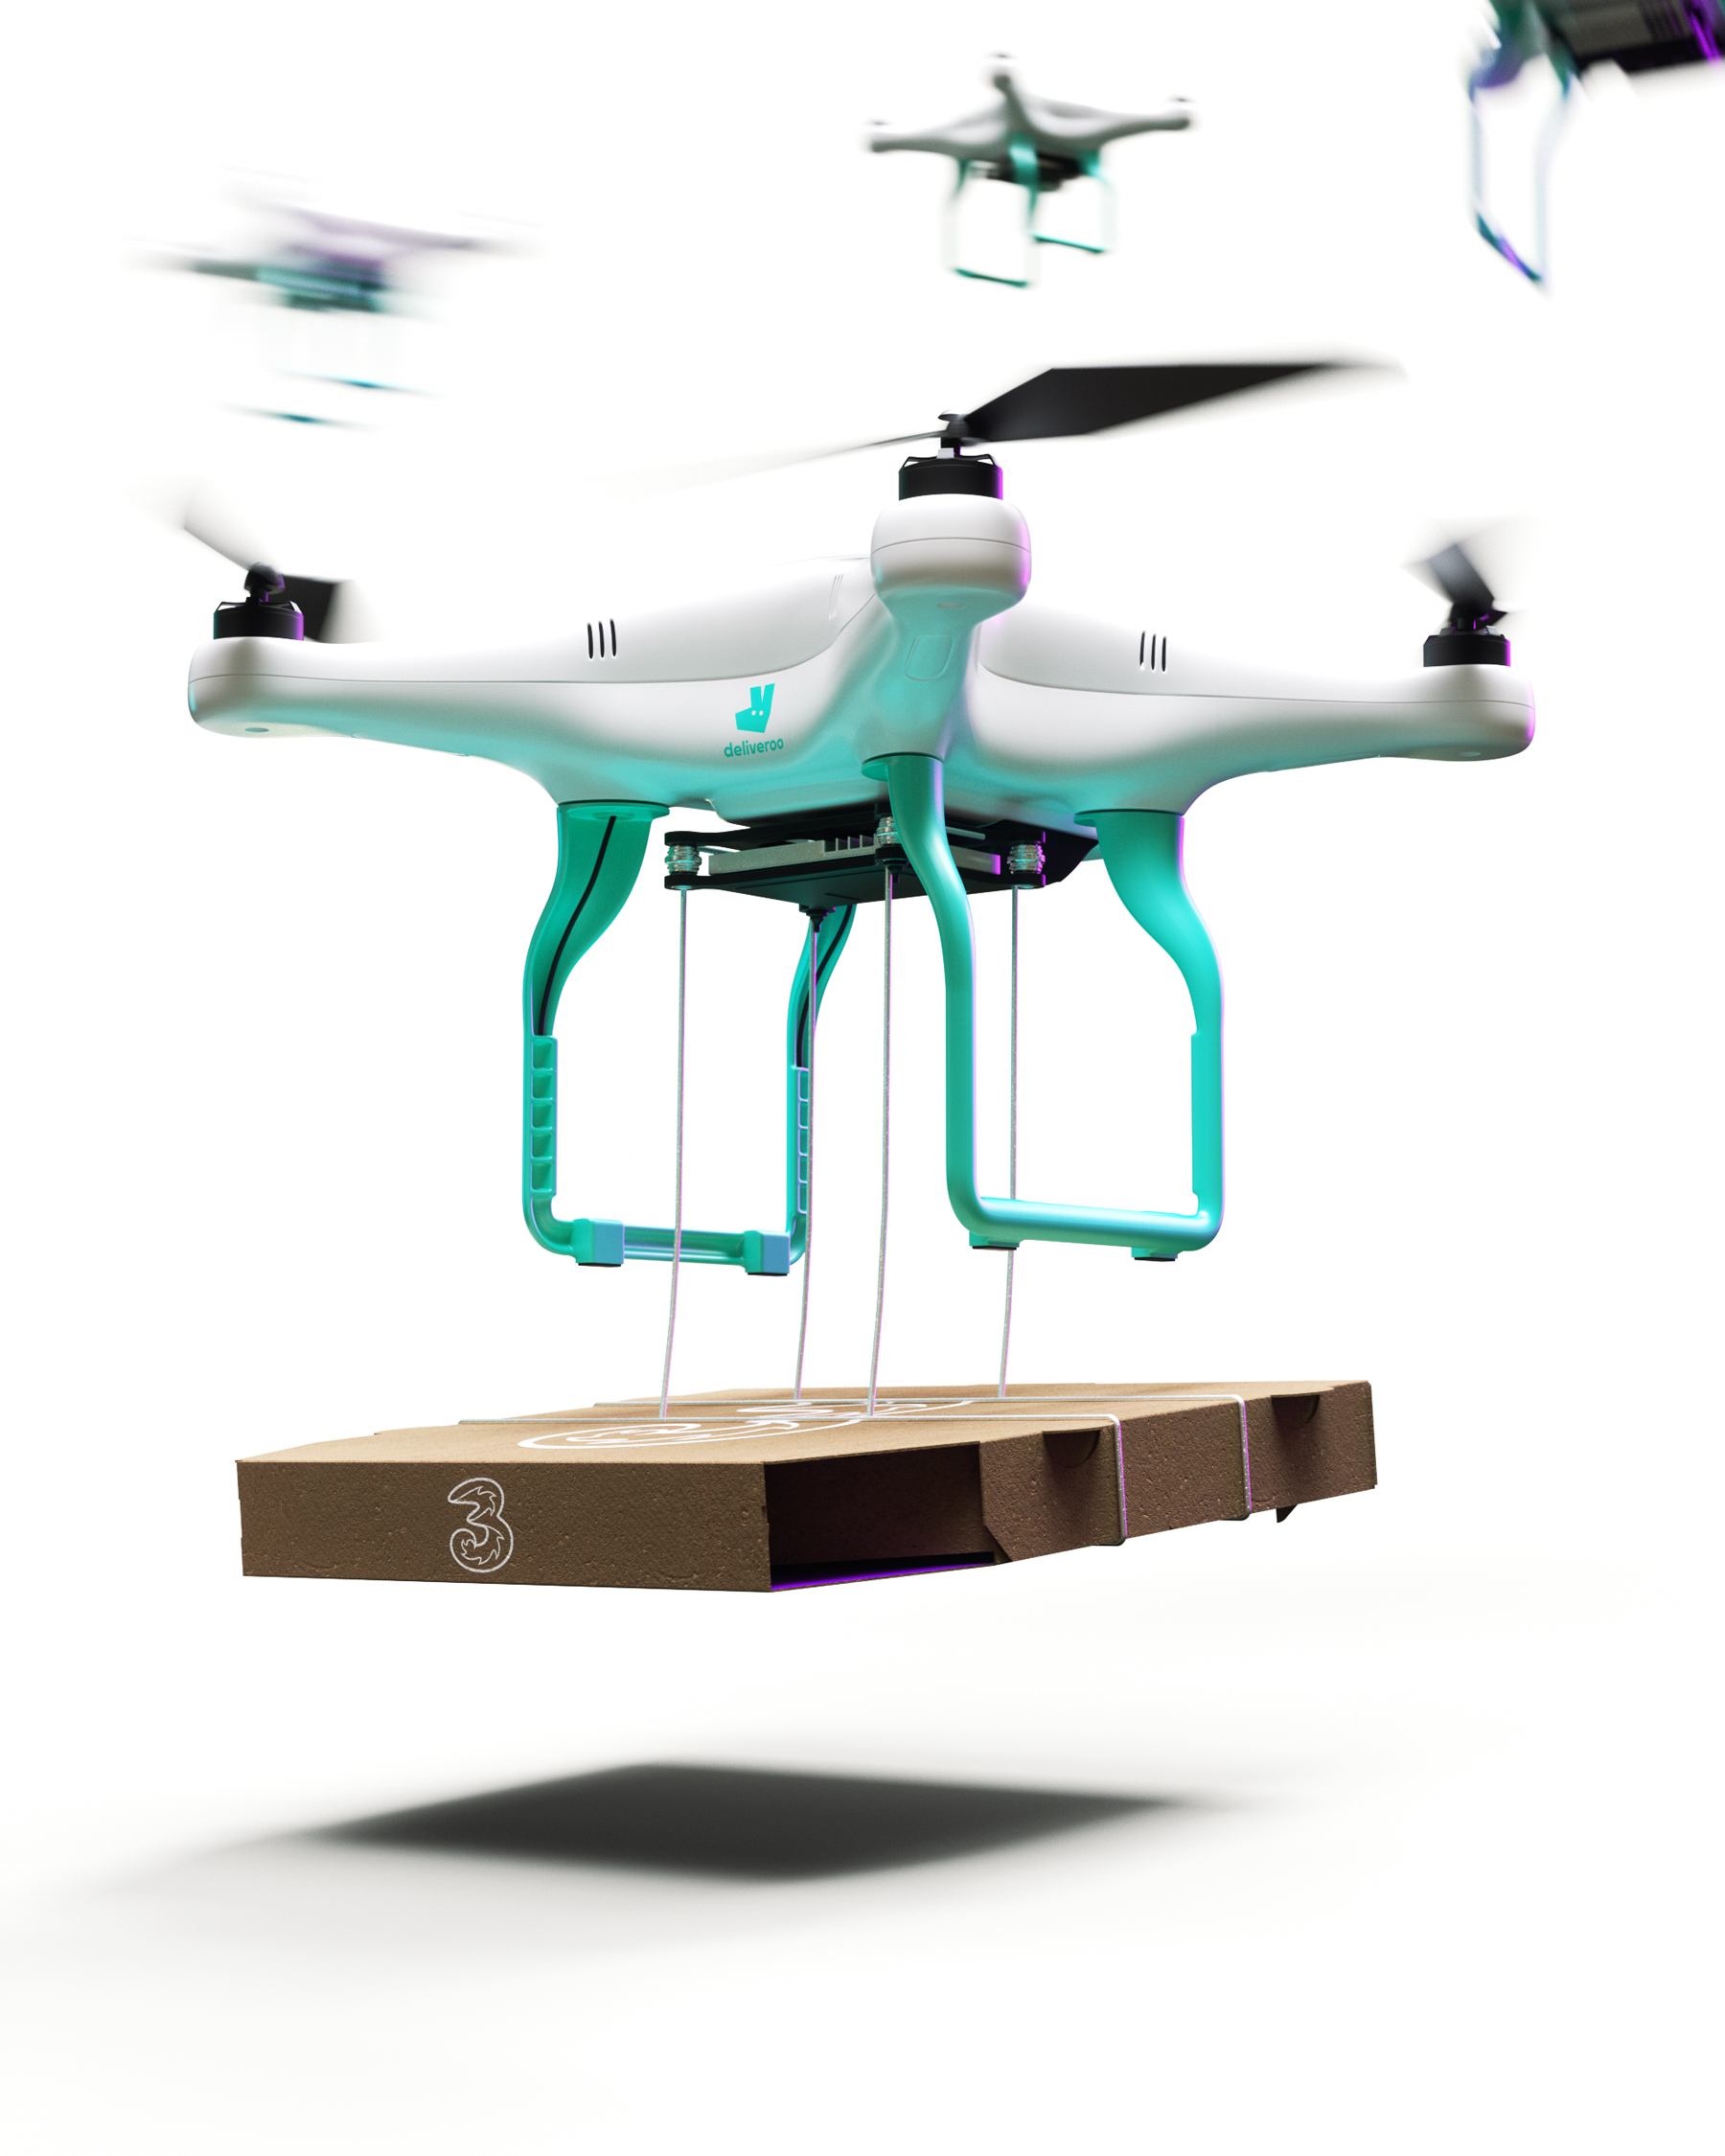 Three_5G_DeliverooDrone_V5.jpg